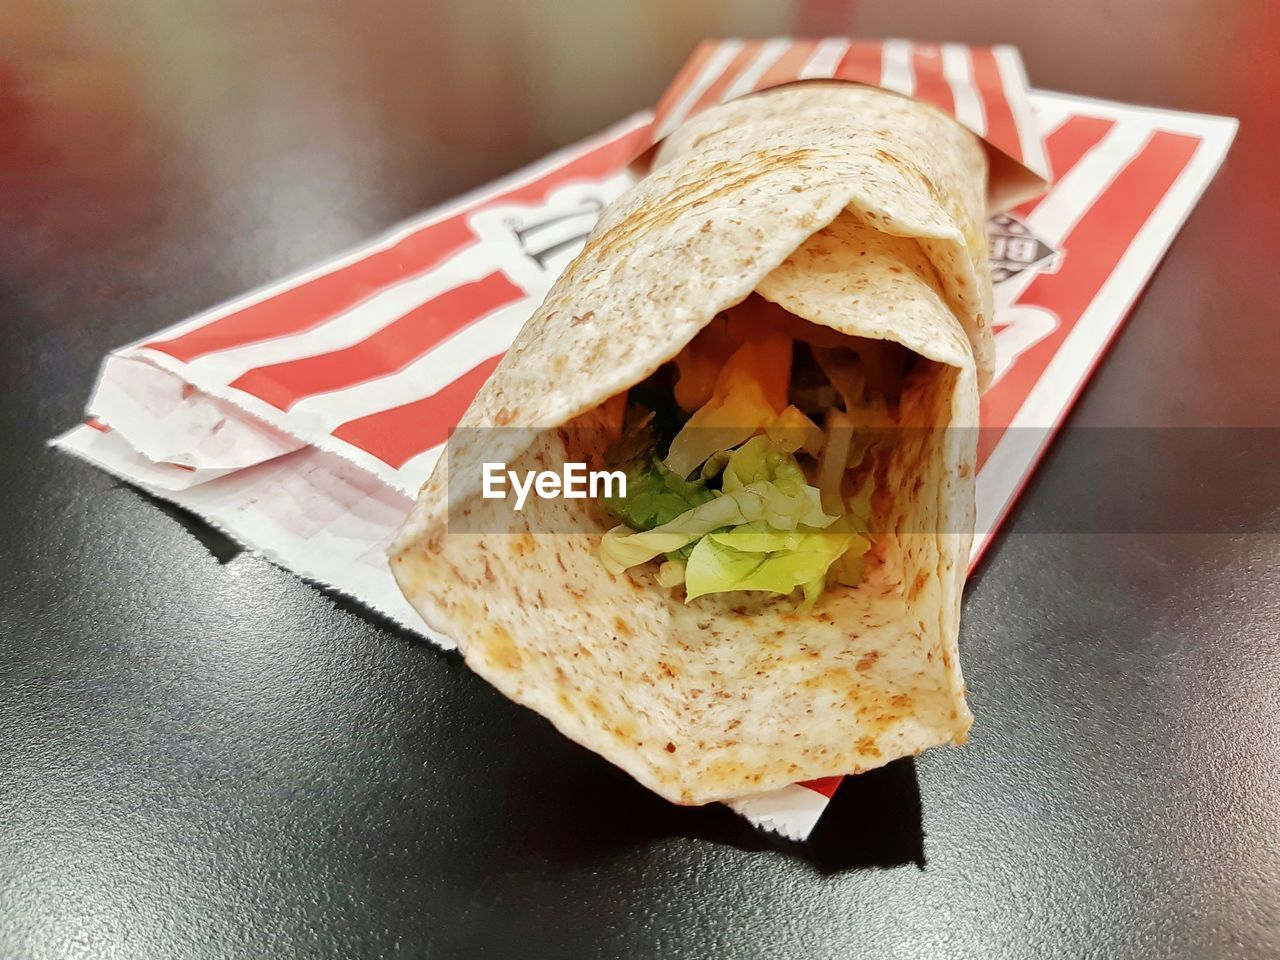 food, food and drink, ready-to-eat, sandwich, close-up, bread, freshness, still life, indoors, focus on foreground, table, no people, flag, healthy eating, wrap sandwich, paper, mexican food, tortilla - flatbread, snack, burrito